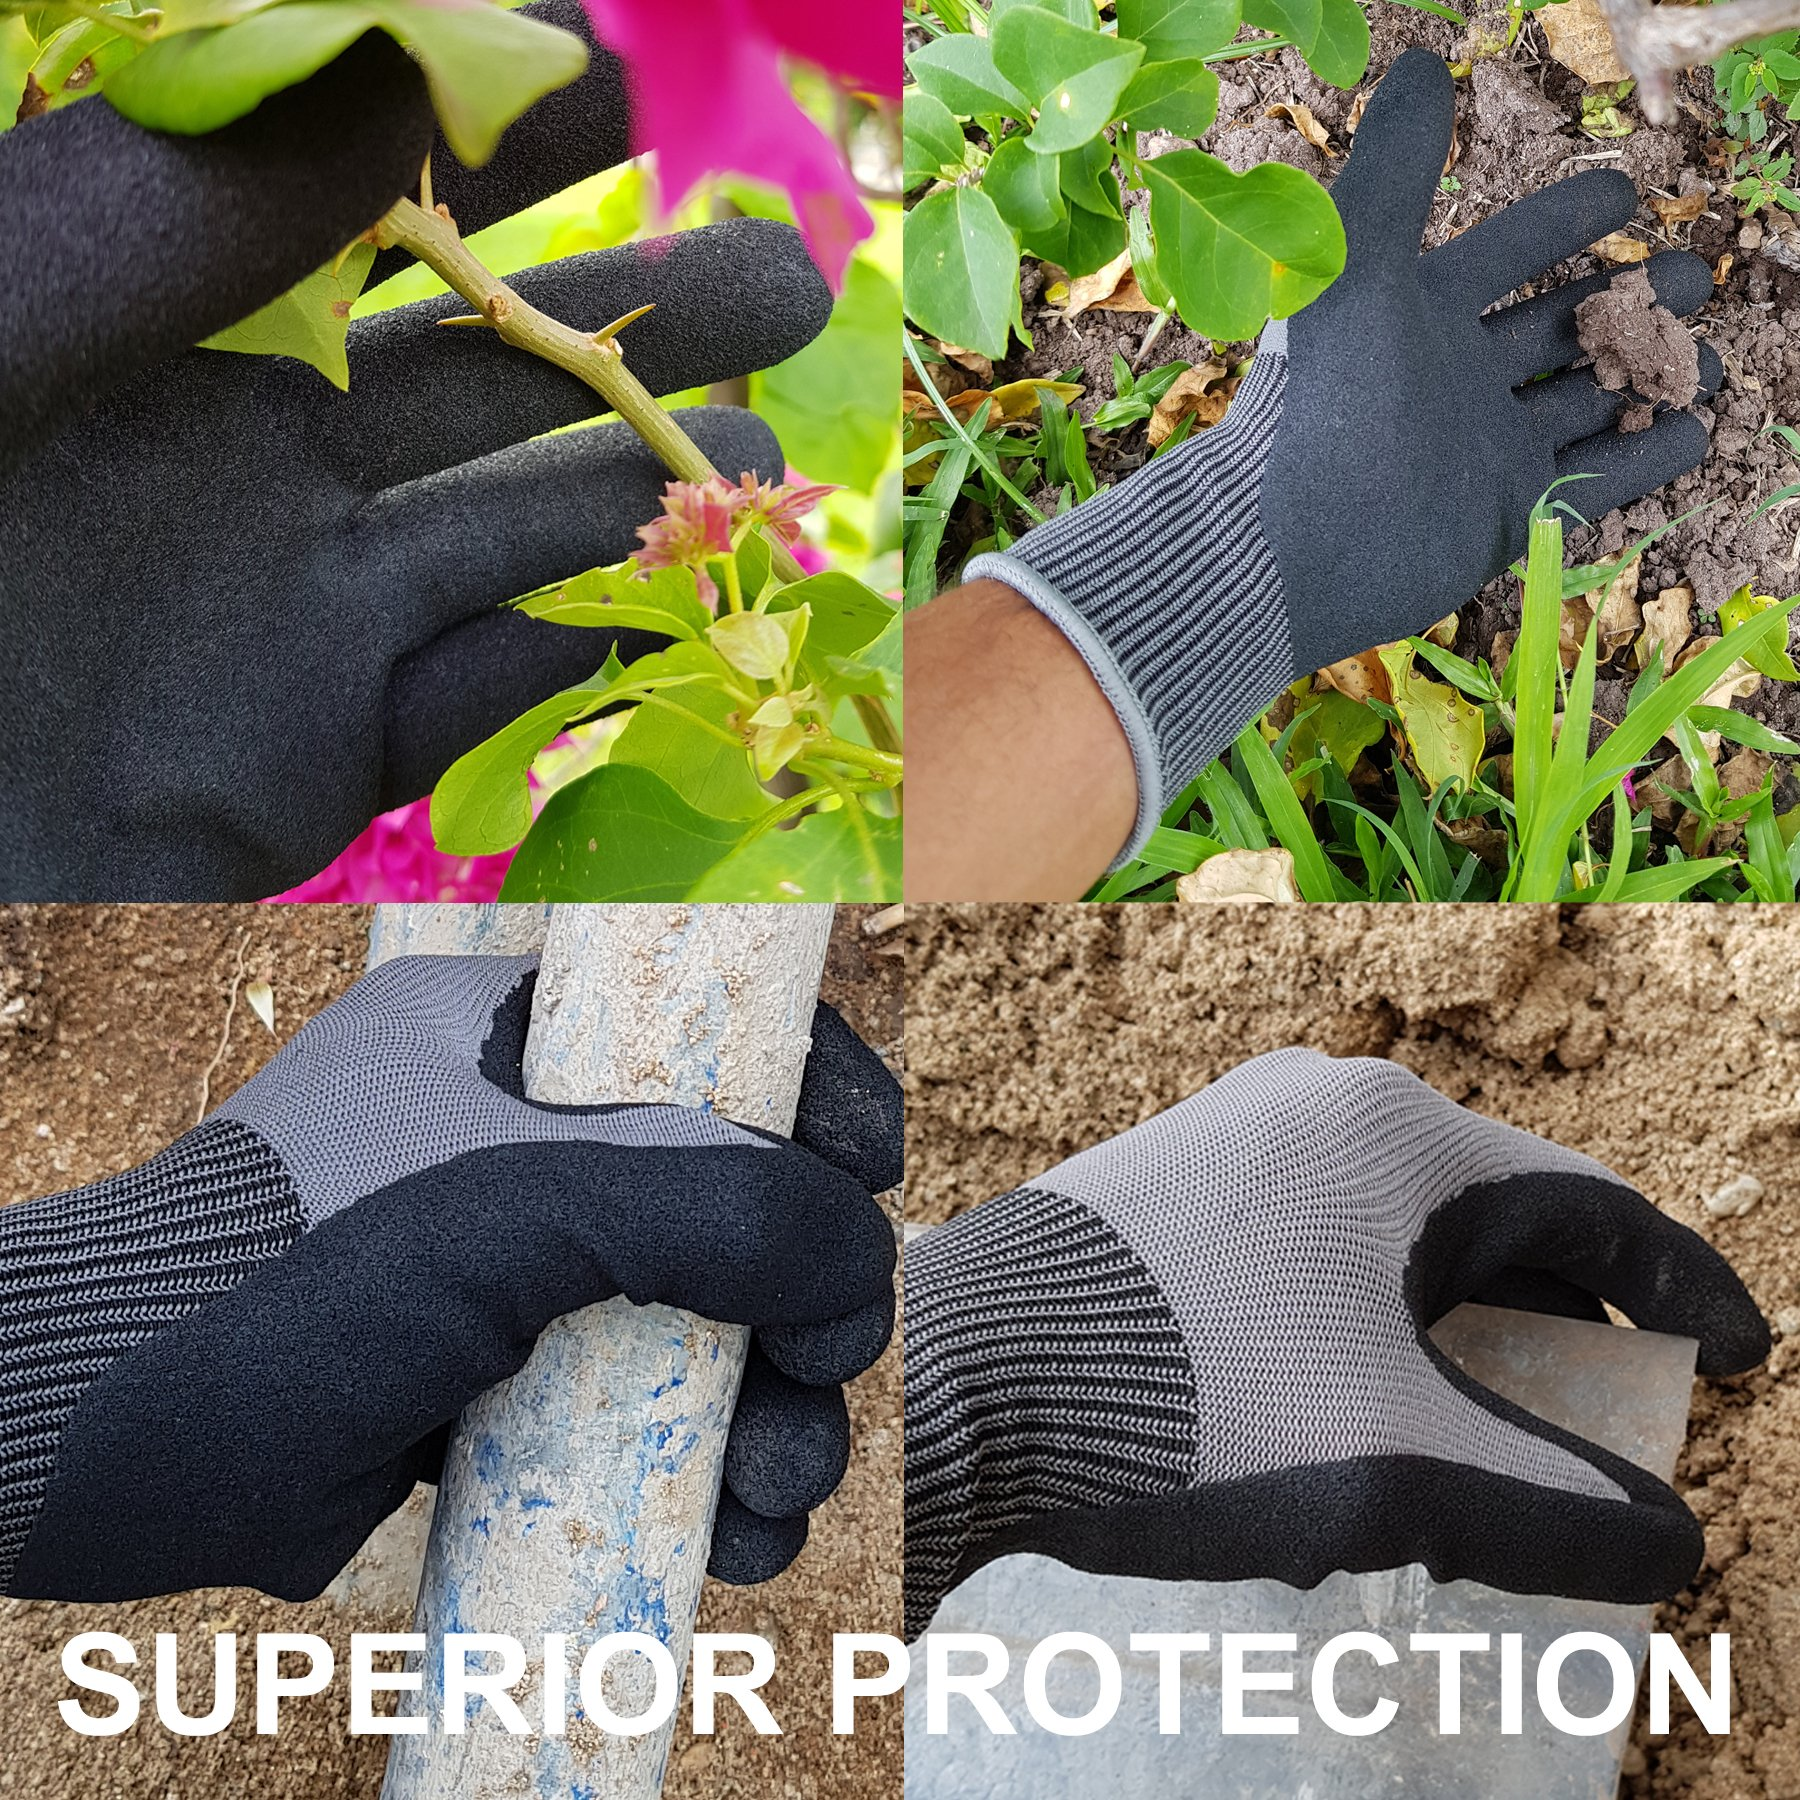 Knee Armor Heavy Duty Professional Knee Pads with Gel Cushions, EVA Foam, Adjustable Straps, Bonus Protective Gloves. Superb Knee and Hand Protection. Perfect for Construction, Gardening and More by Knee Armor (Image #7)